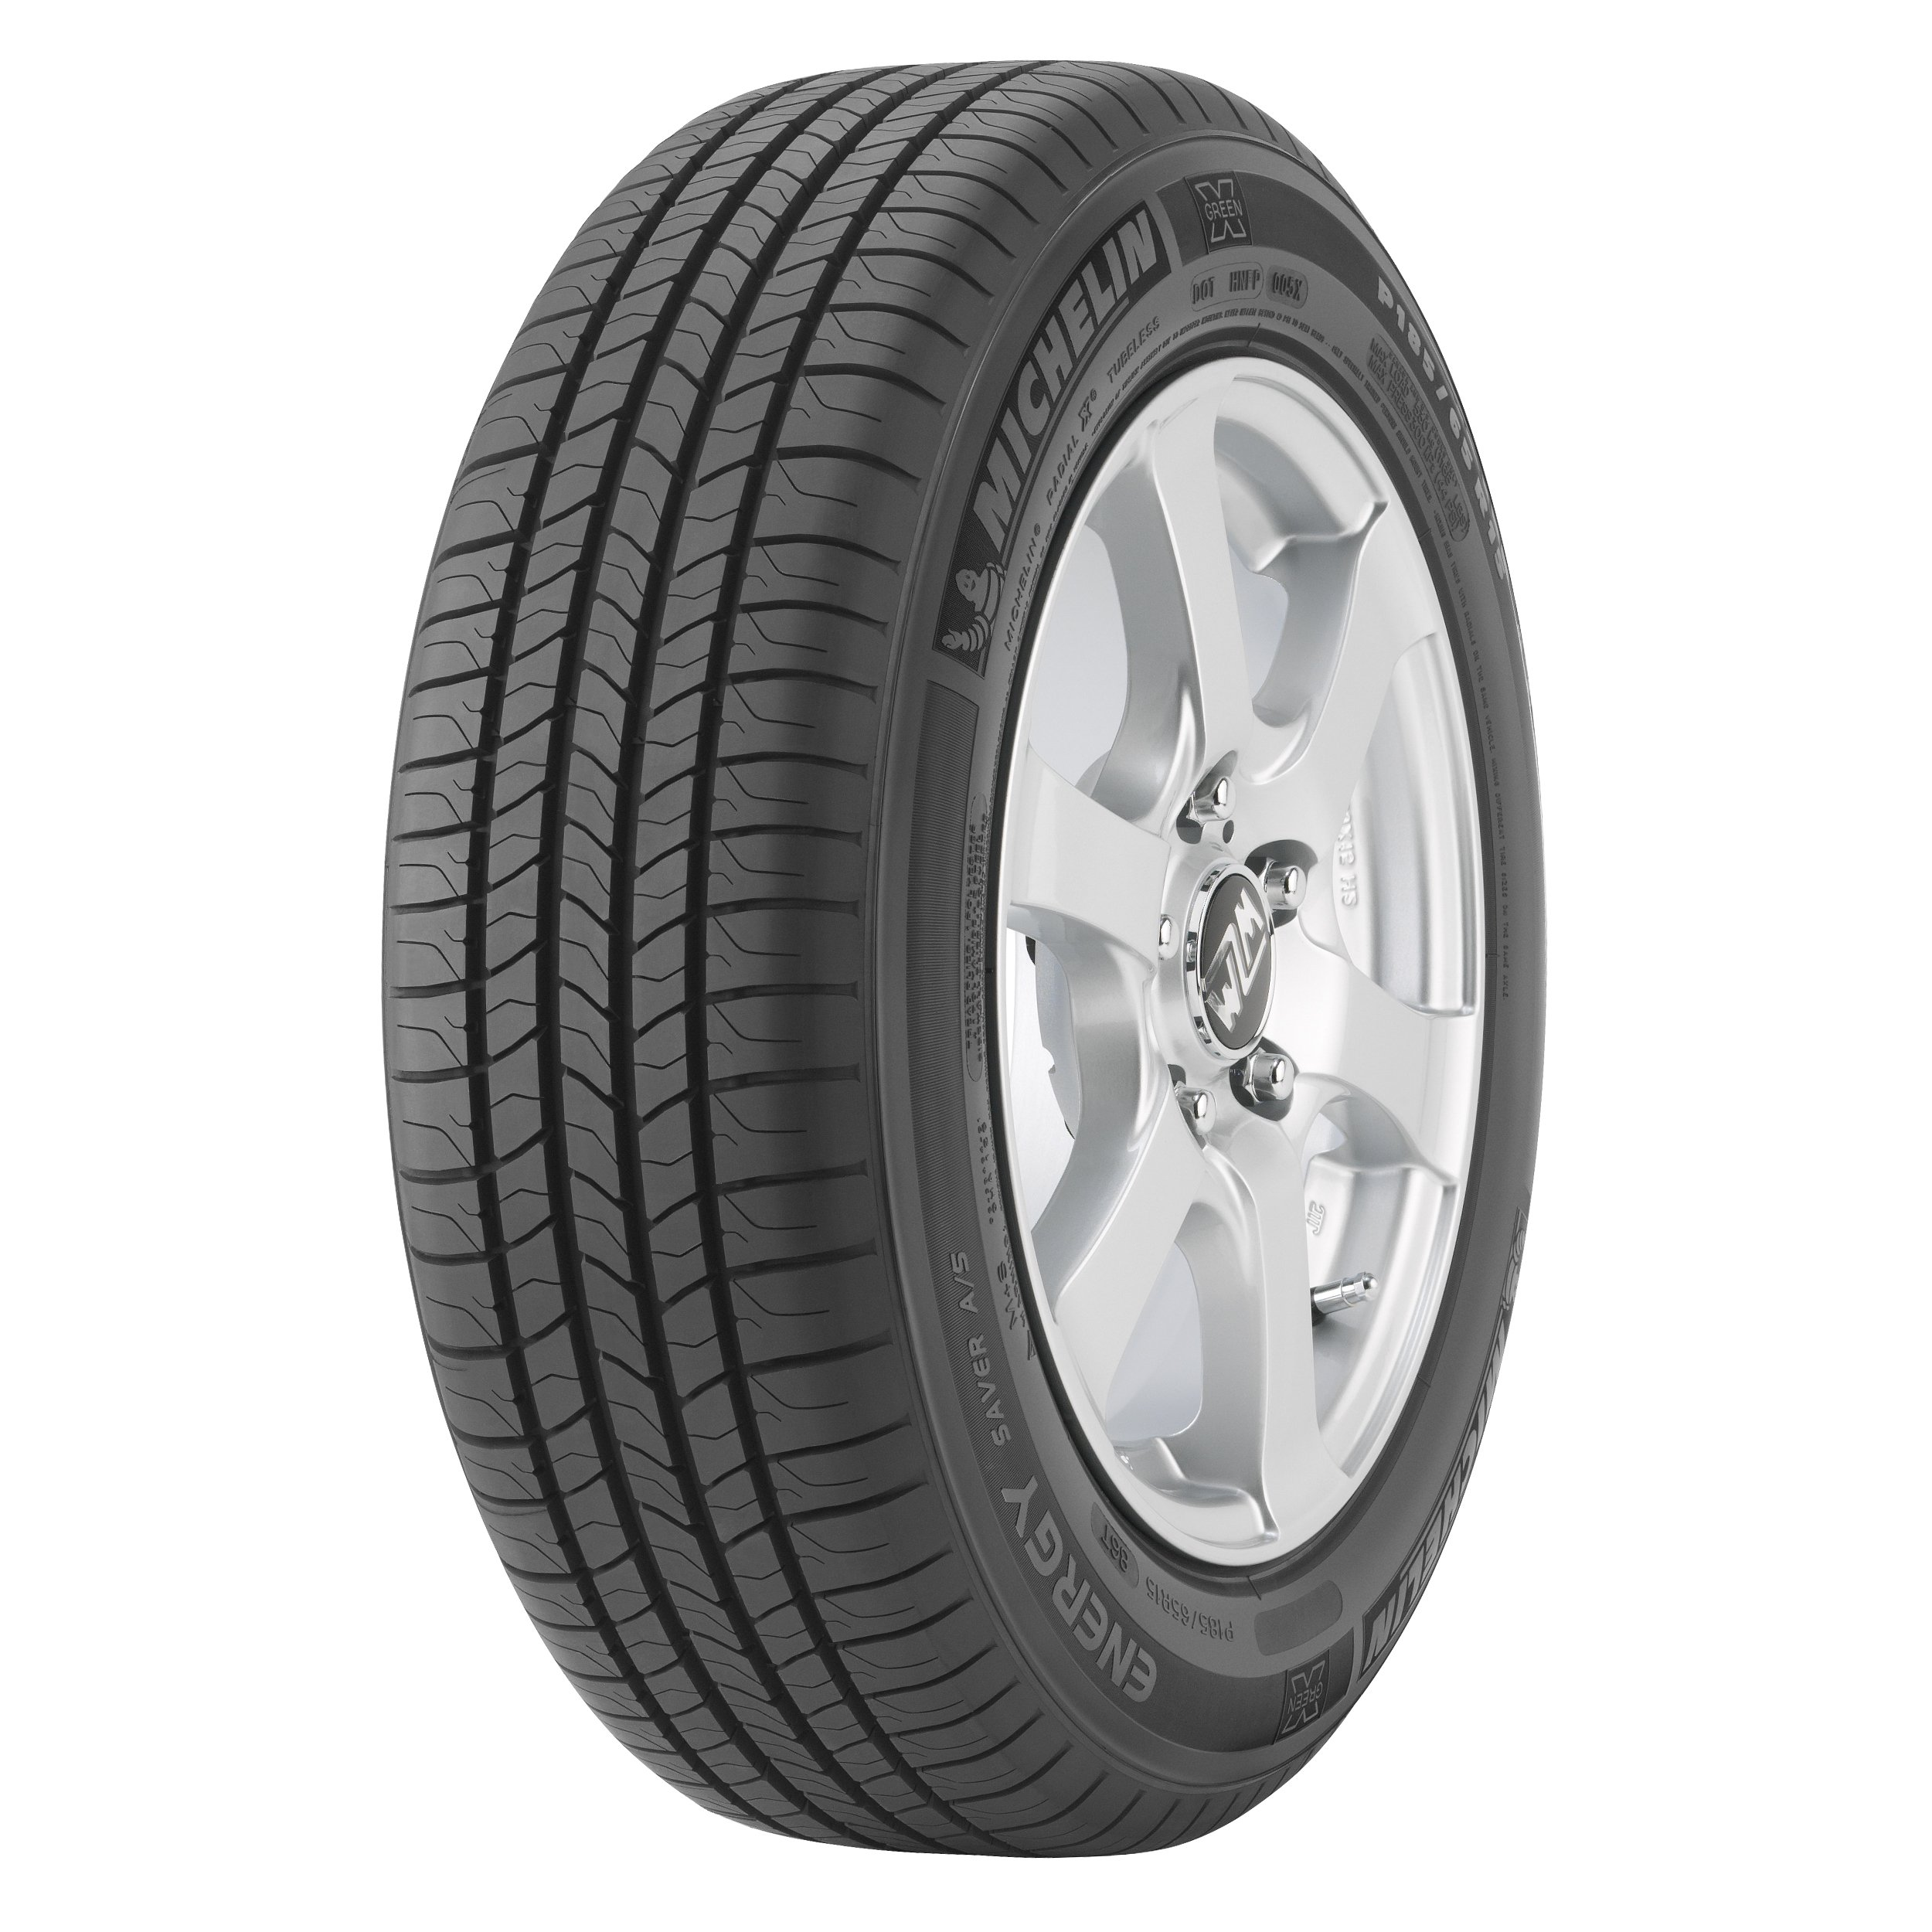 Michelin Energy Saver A/S All-Season Radial Tire - P205/65R16 94S